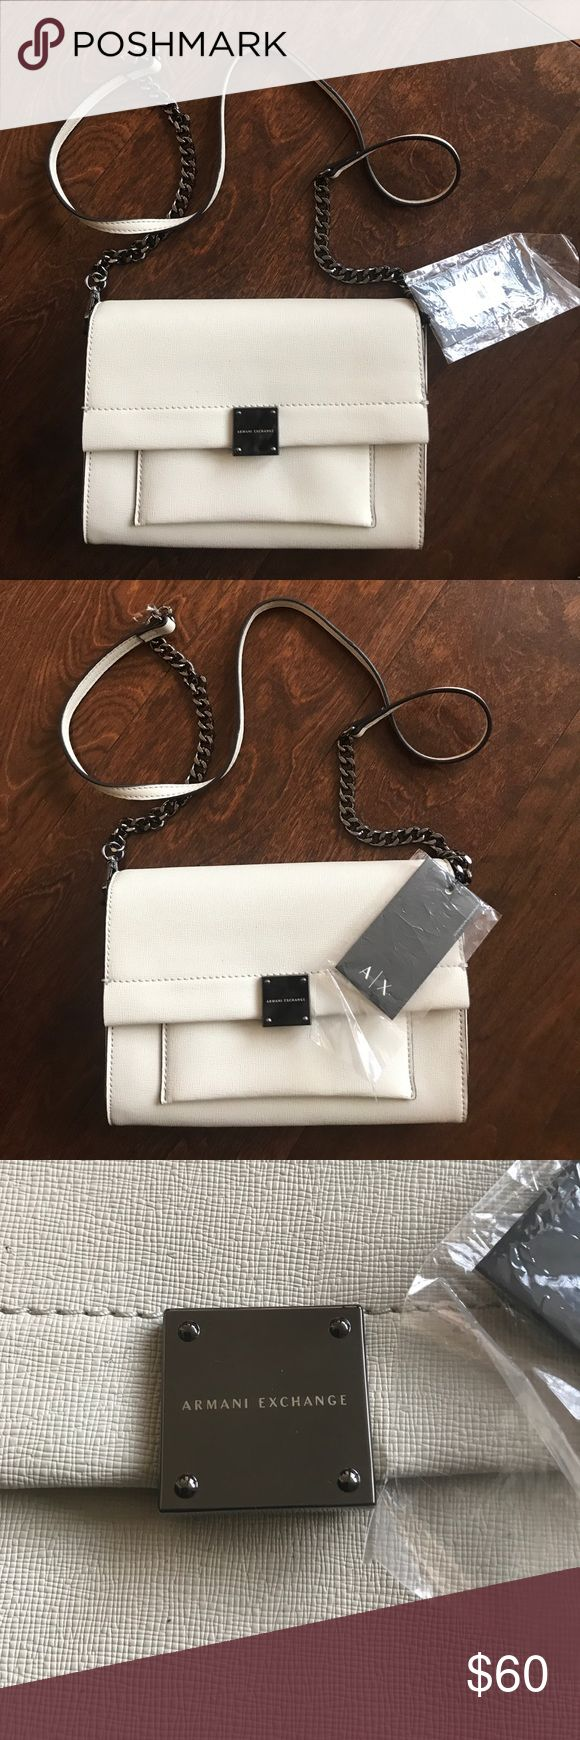 Armani Exchange Crossbody Bag with tags and box Very cute Crossbody Bag With Armani Exchange logo in the front . . Has snap button closure. Inside the flap there is a small pocket too . Armani Exchange Bags Crossbody Bags